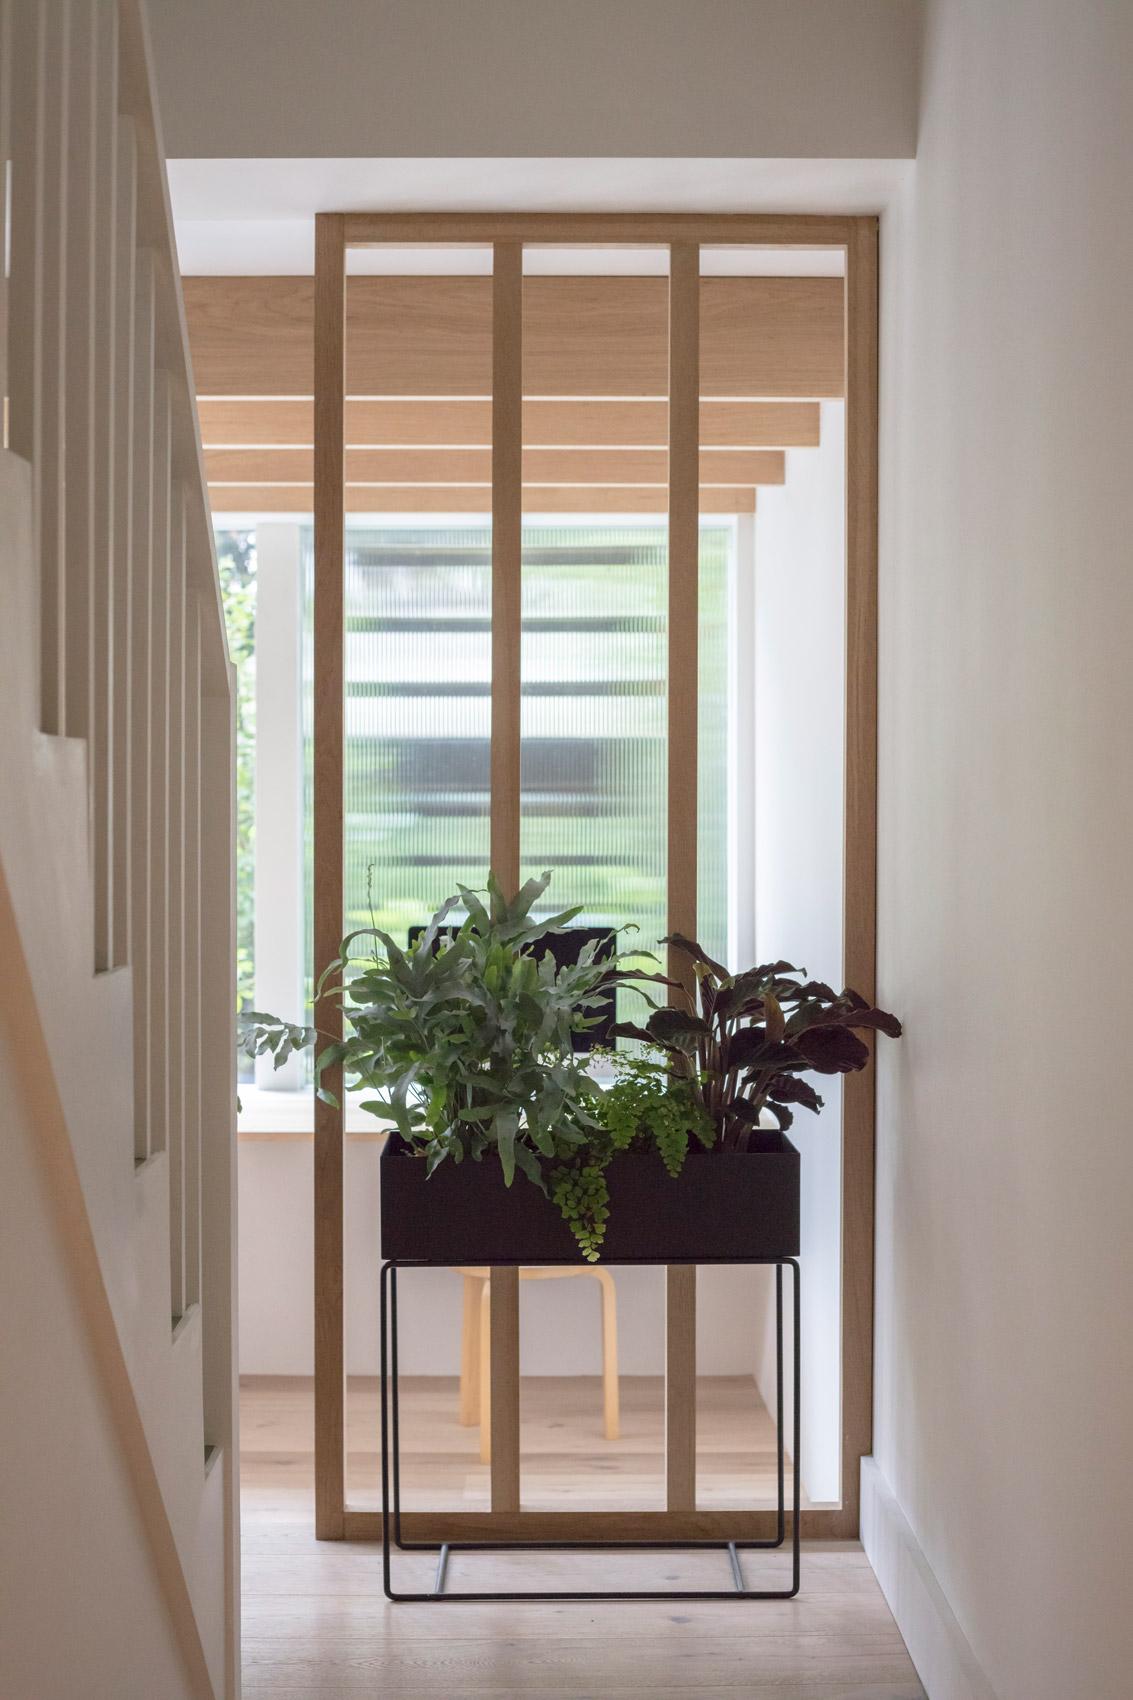 staircase design in wood with plants